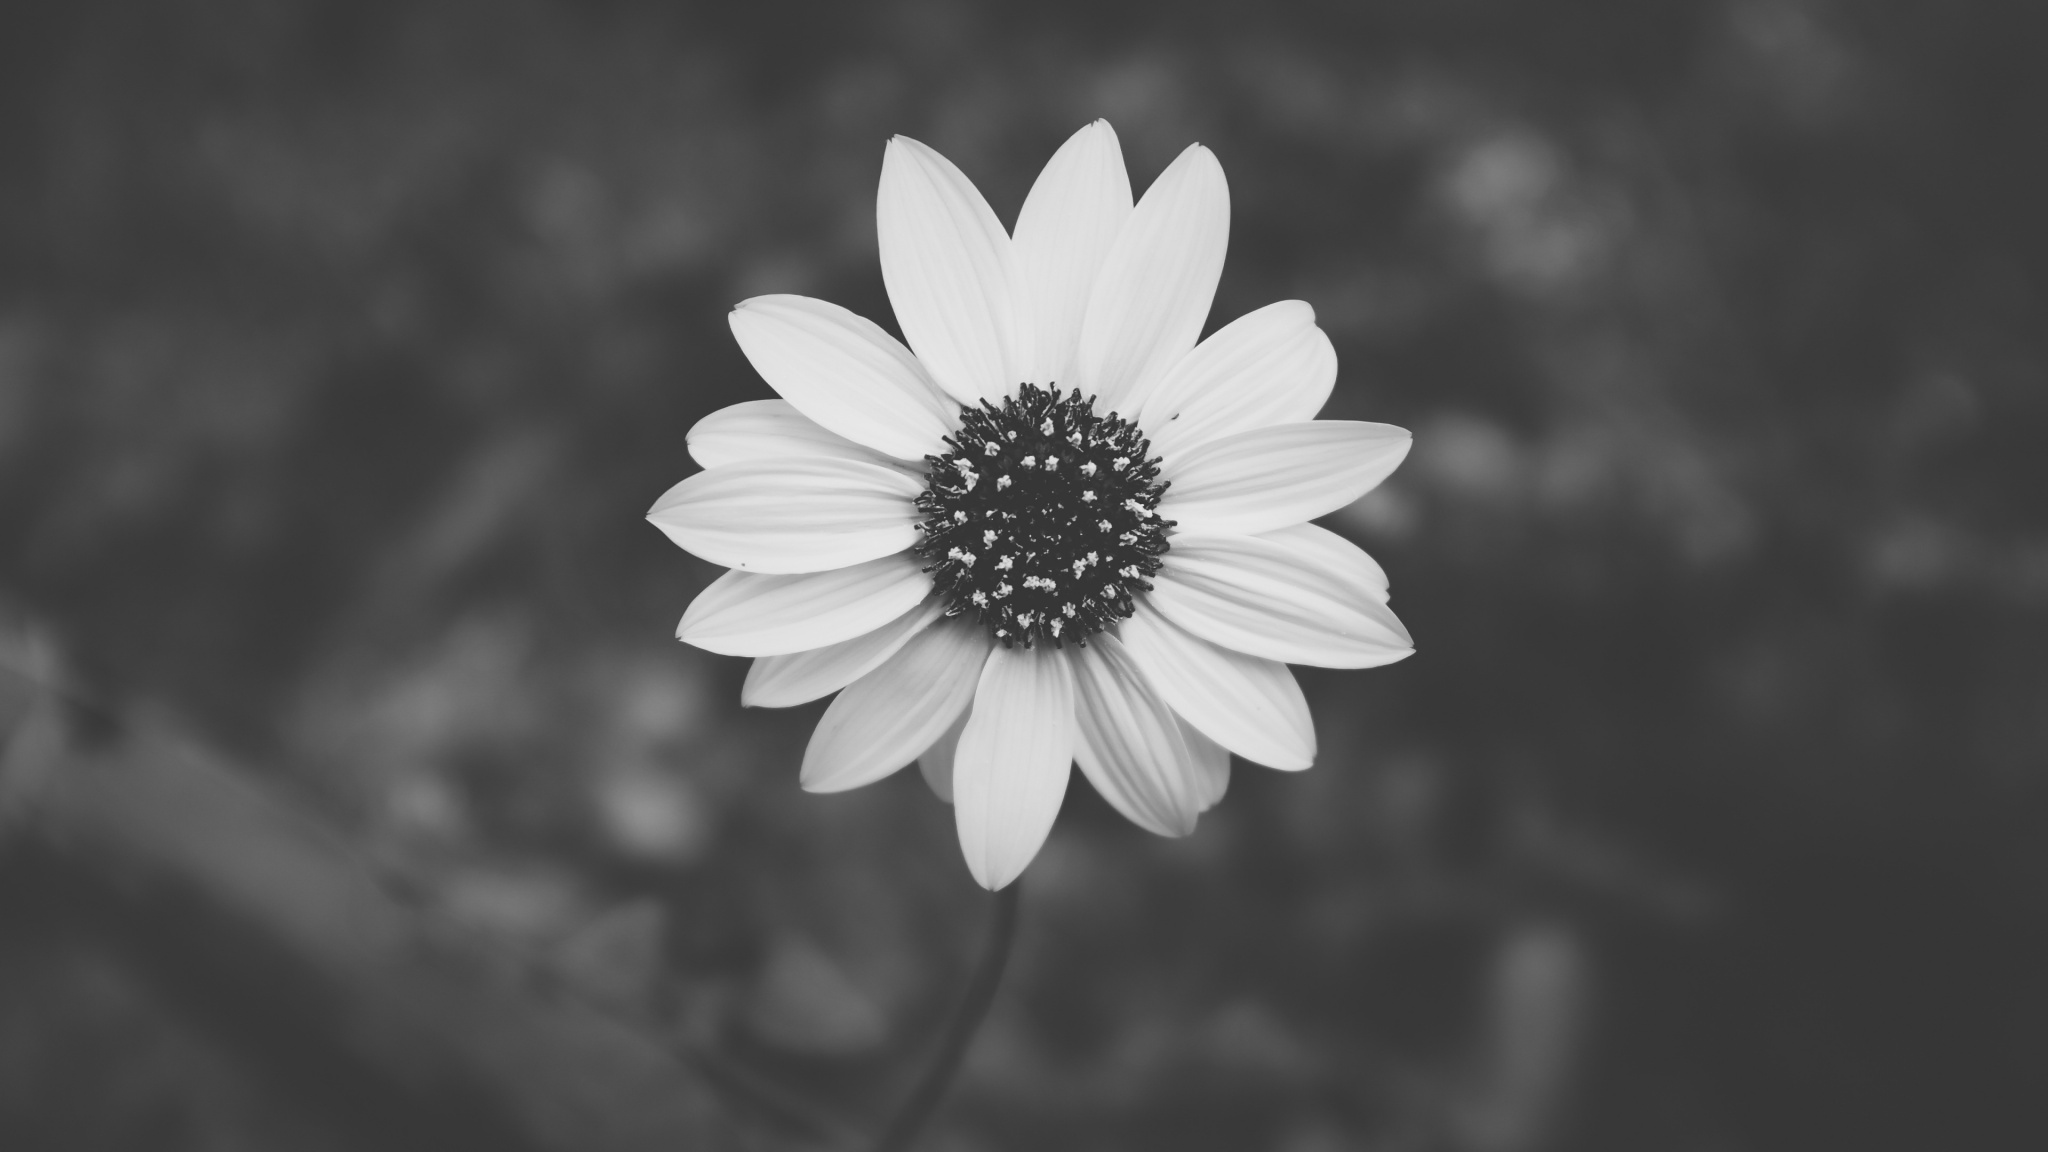 Black And White Flower Plant Wallpapers